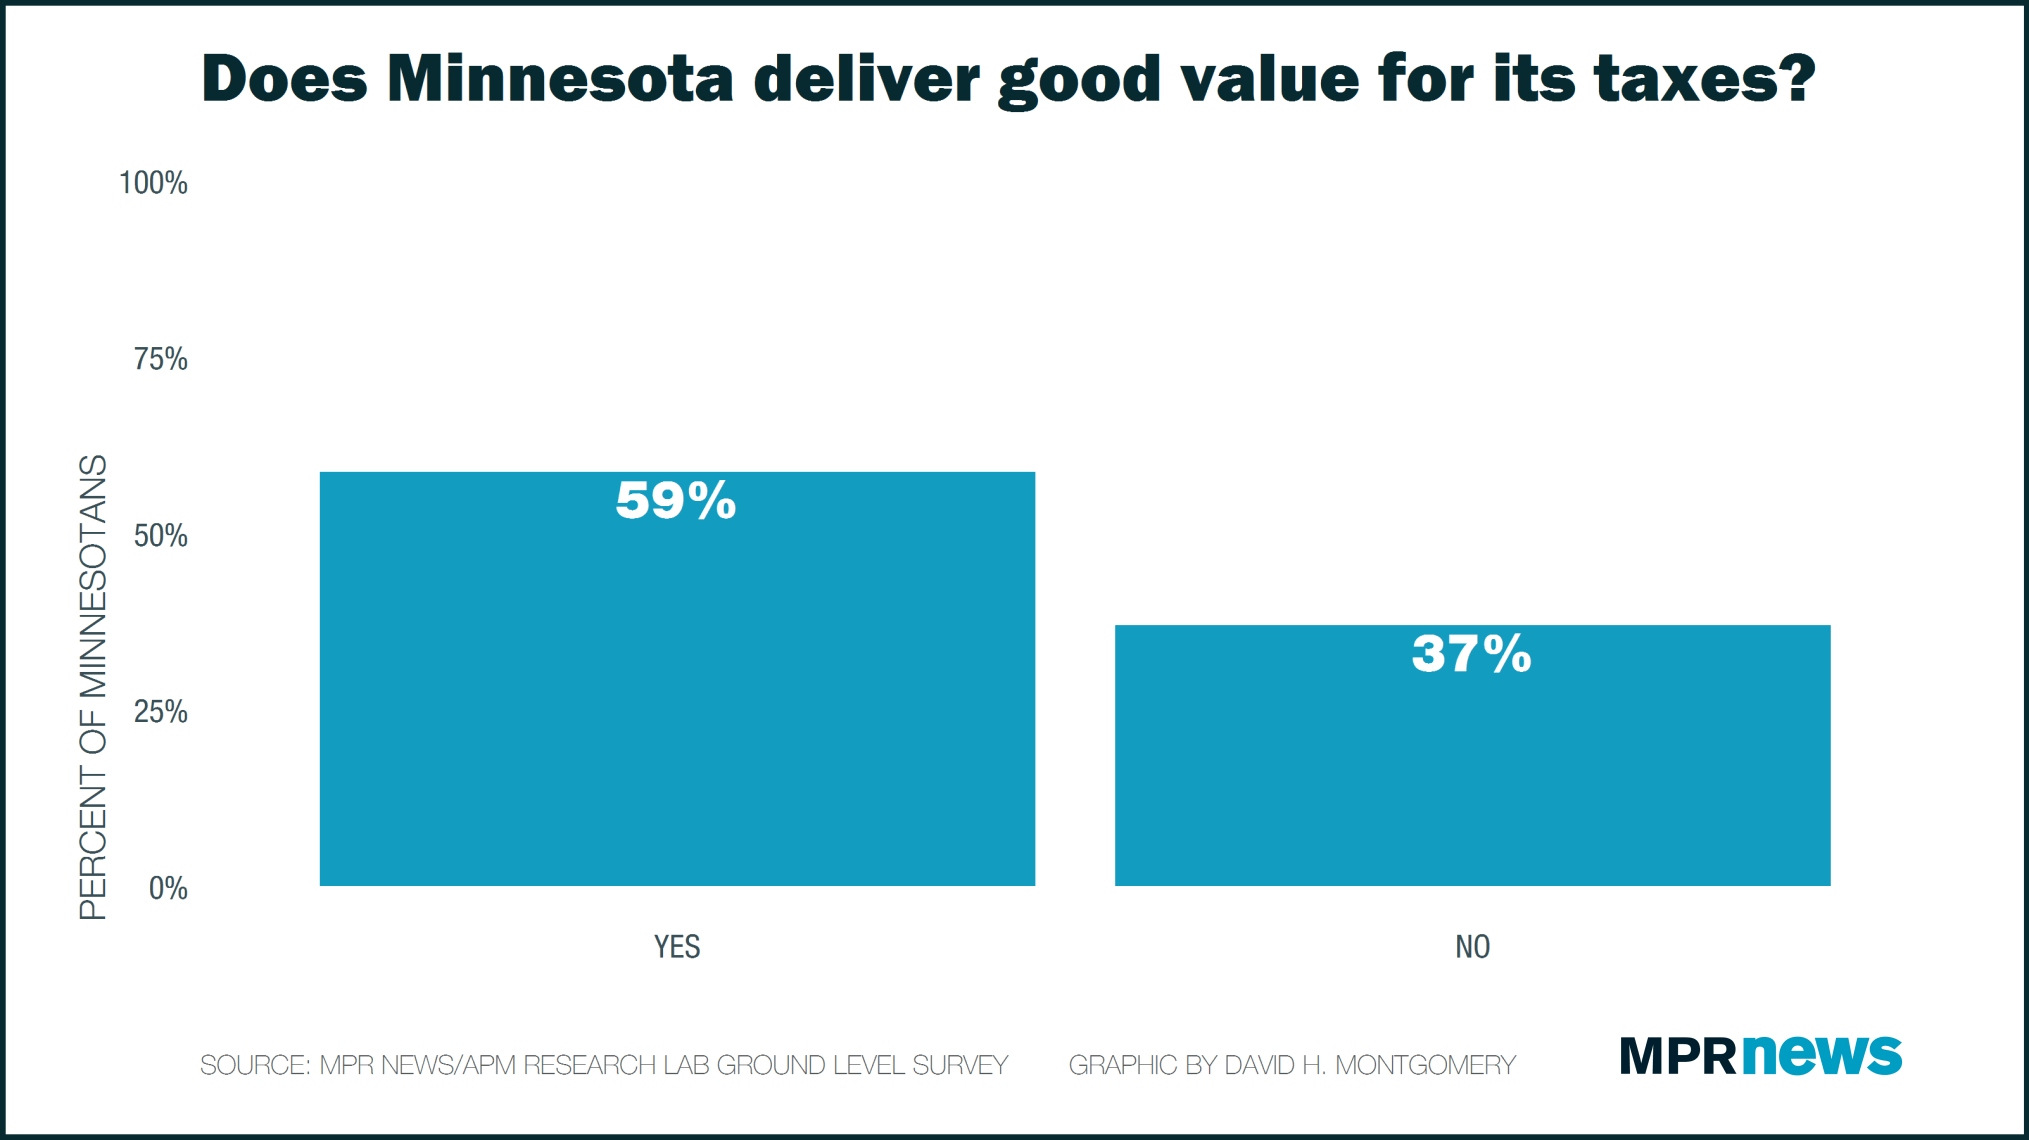 Does Minnesota deliver good value for its taxes?